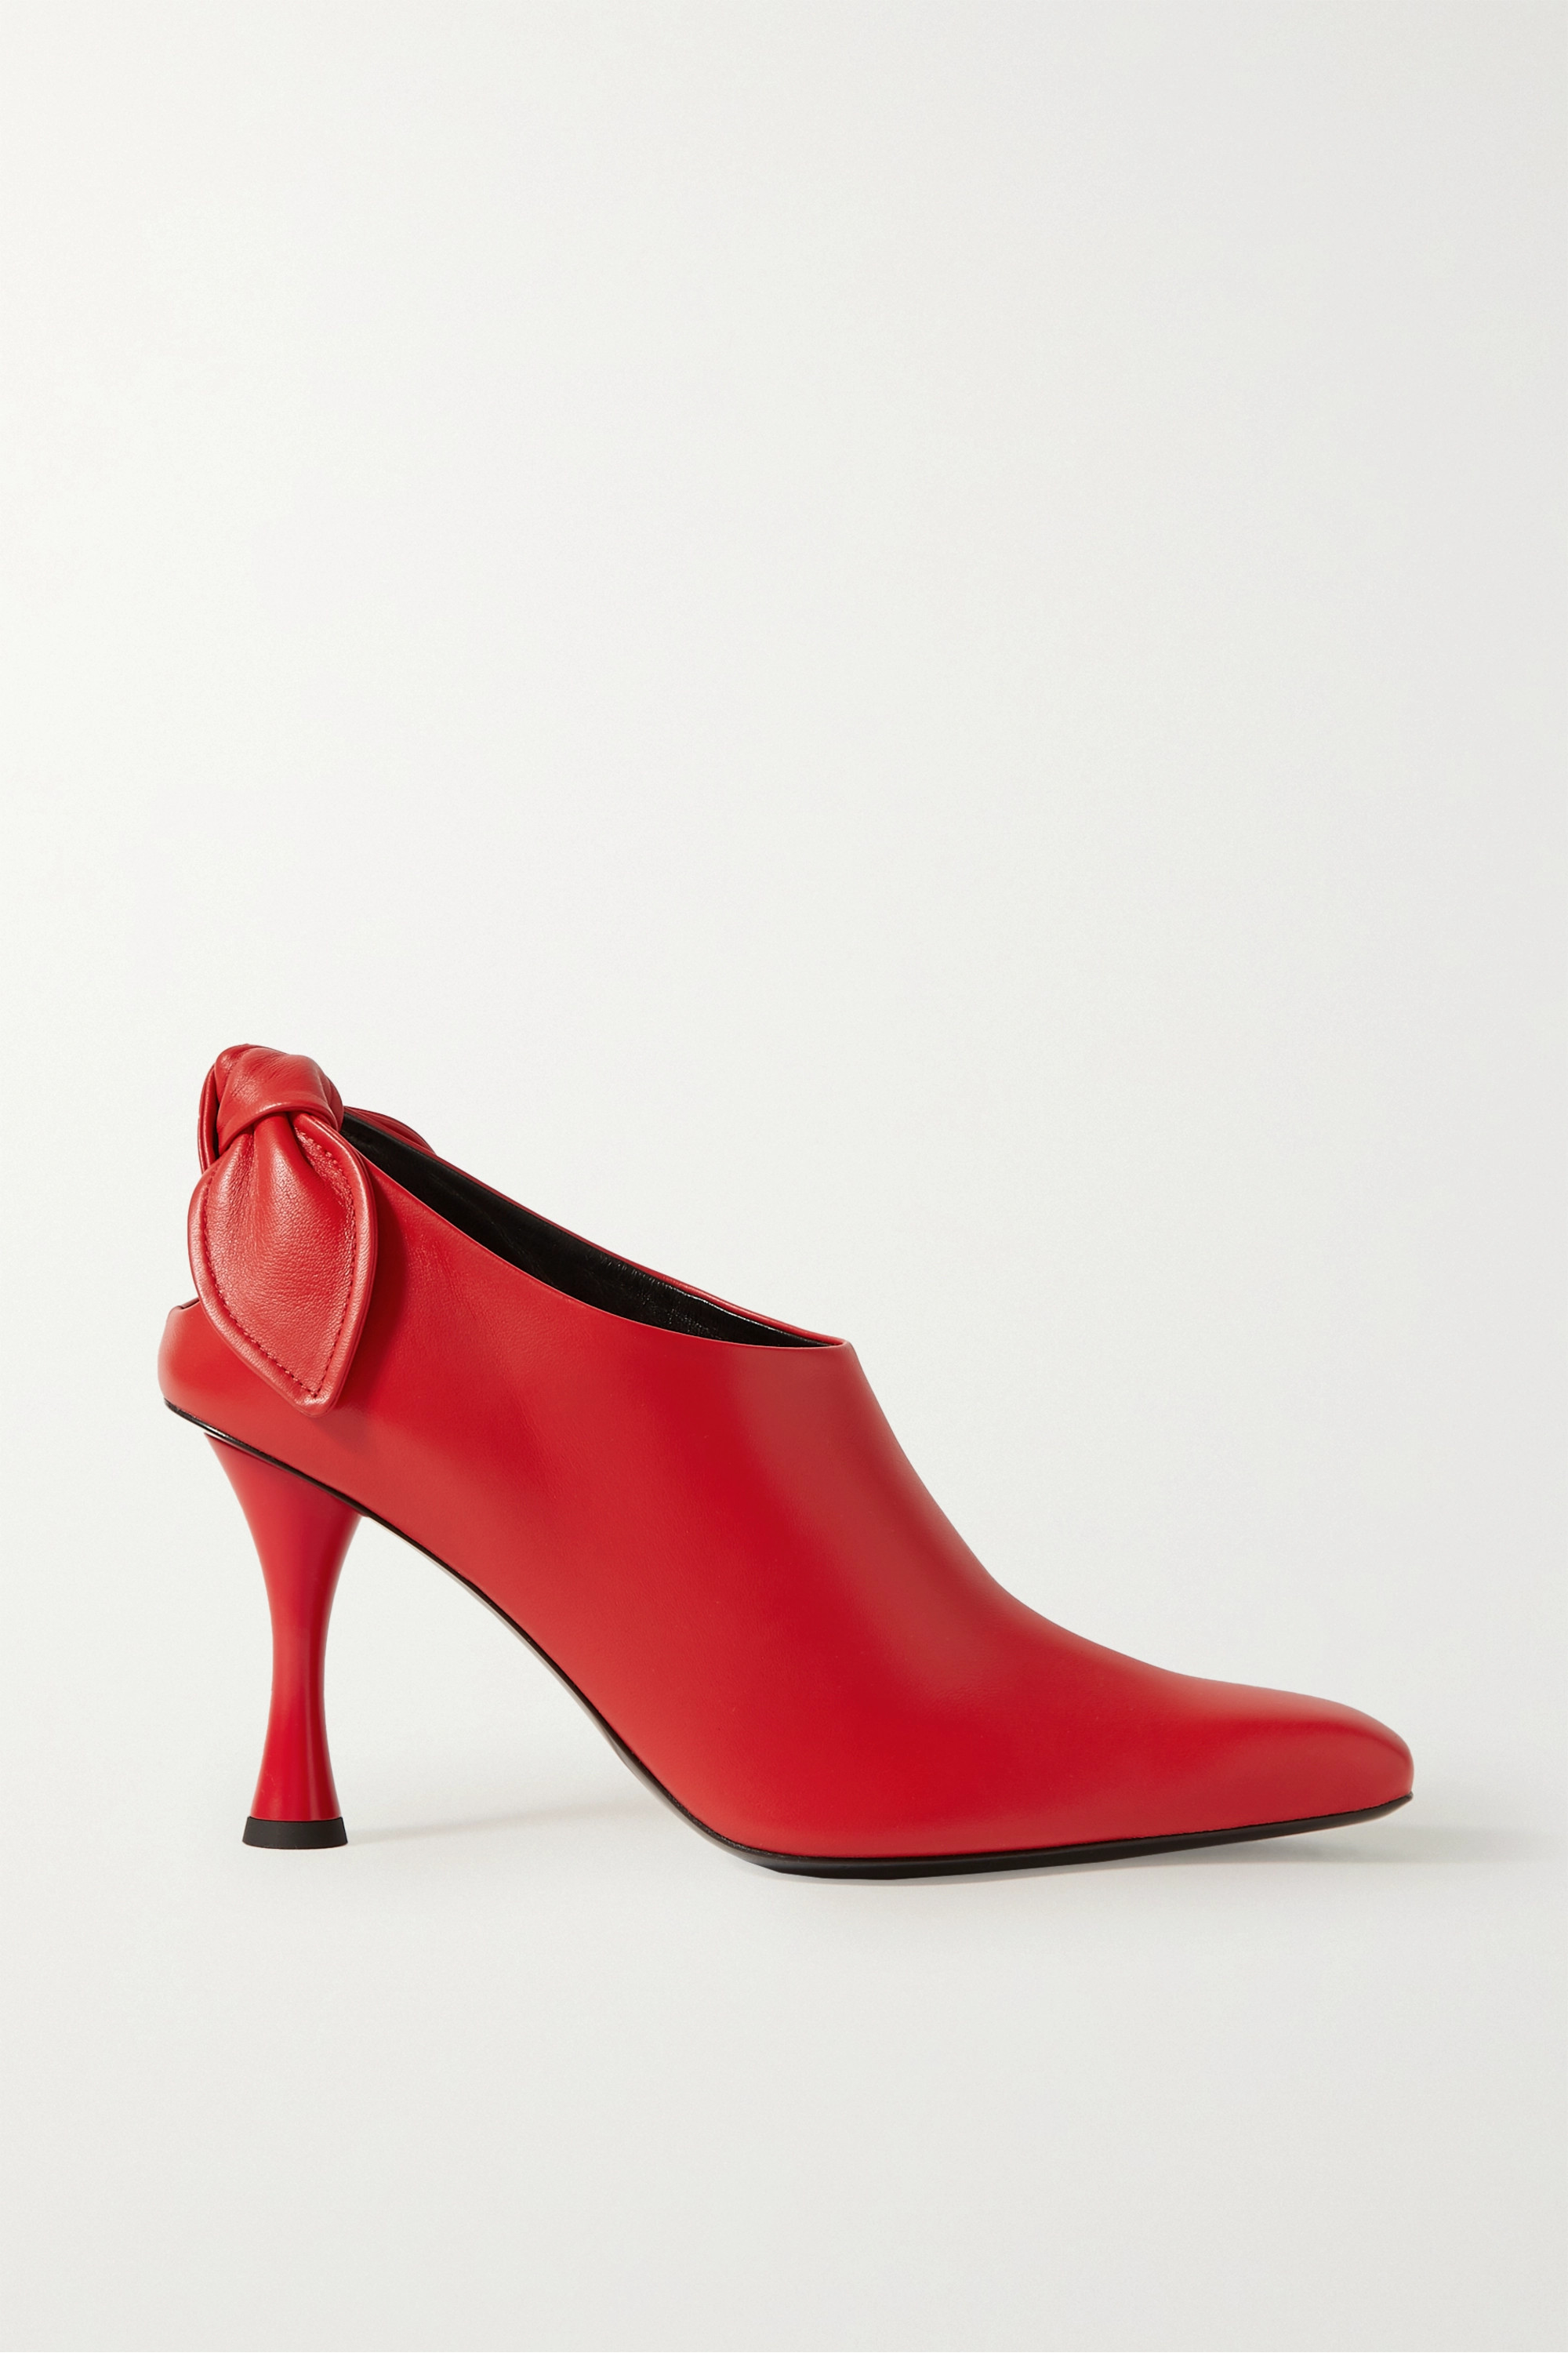 Proenza Schouler Knotted leather pumps